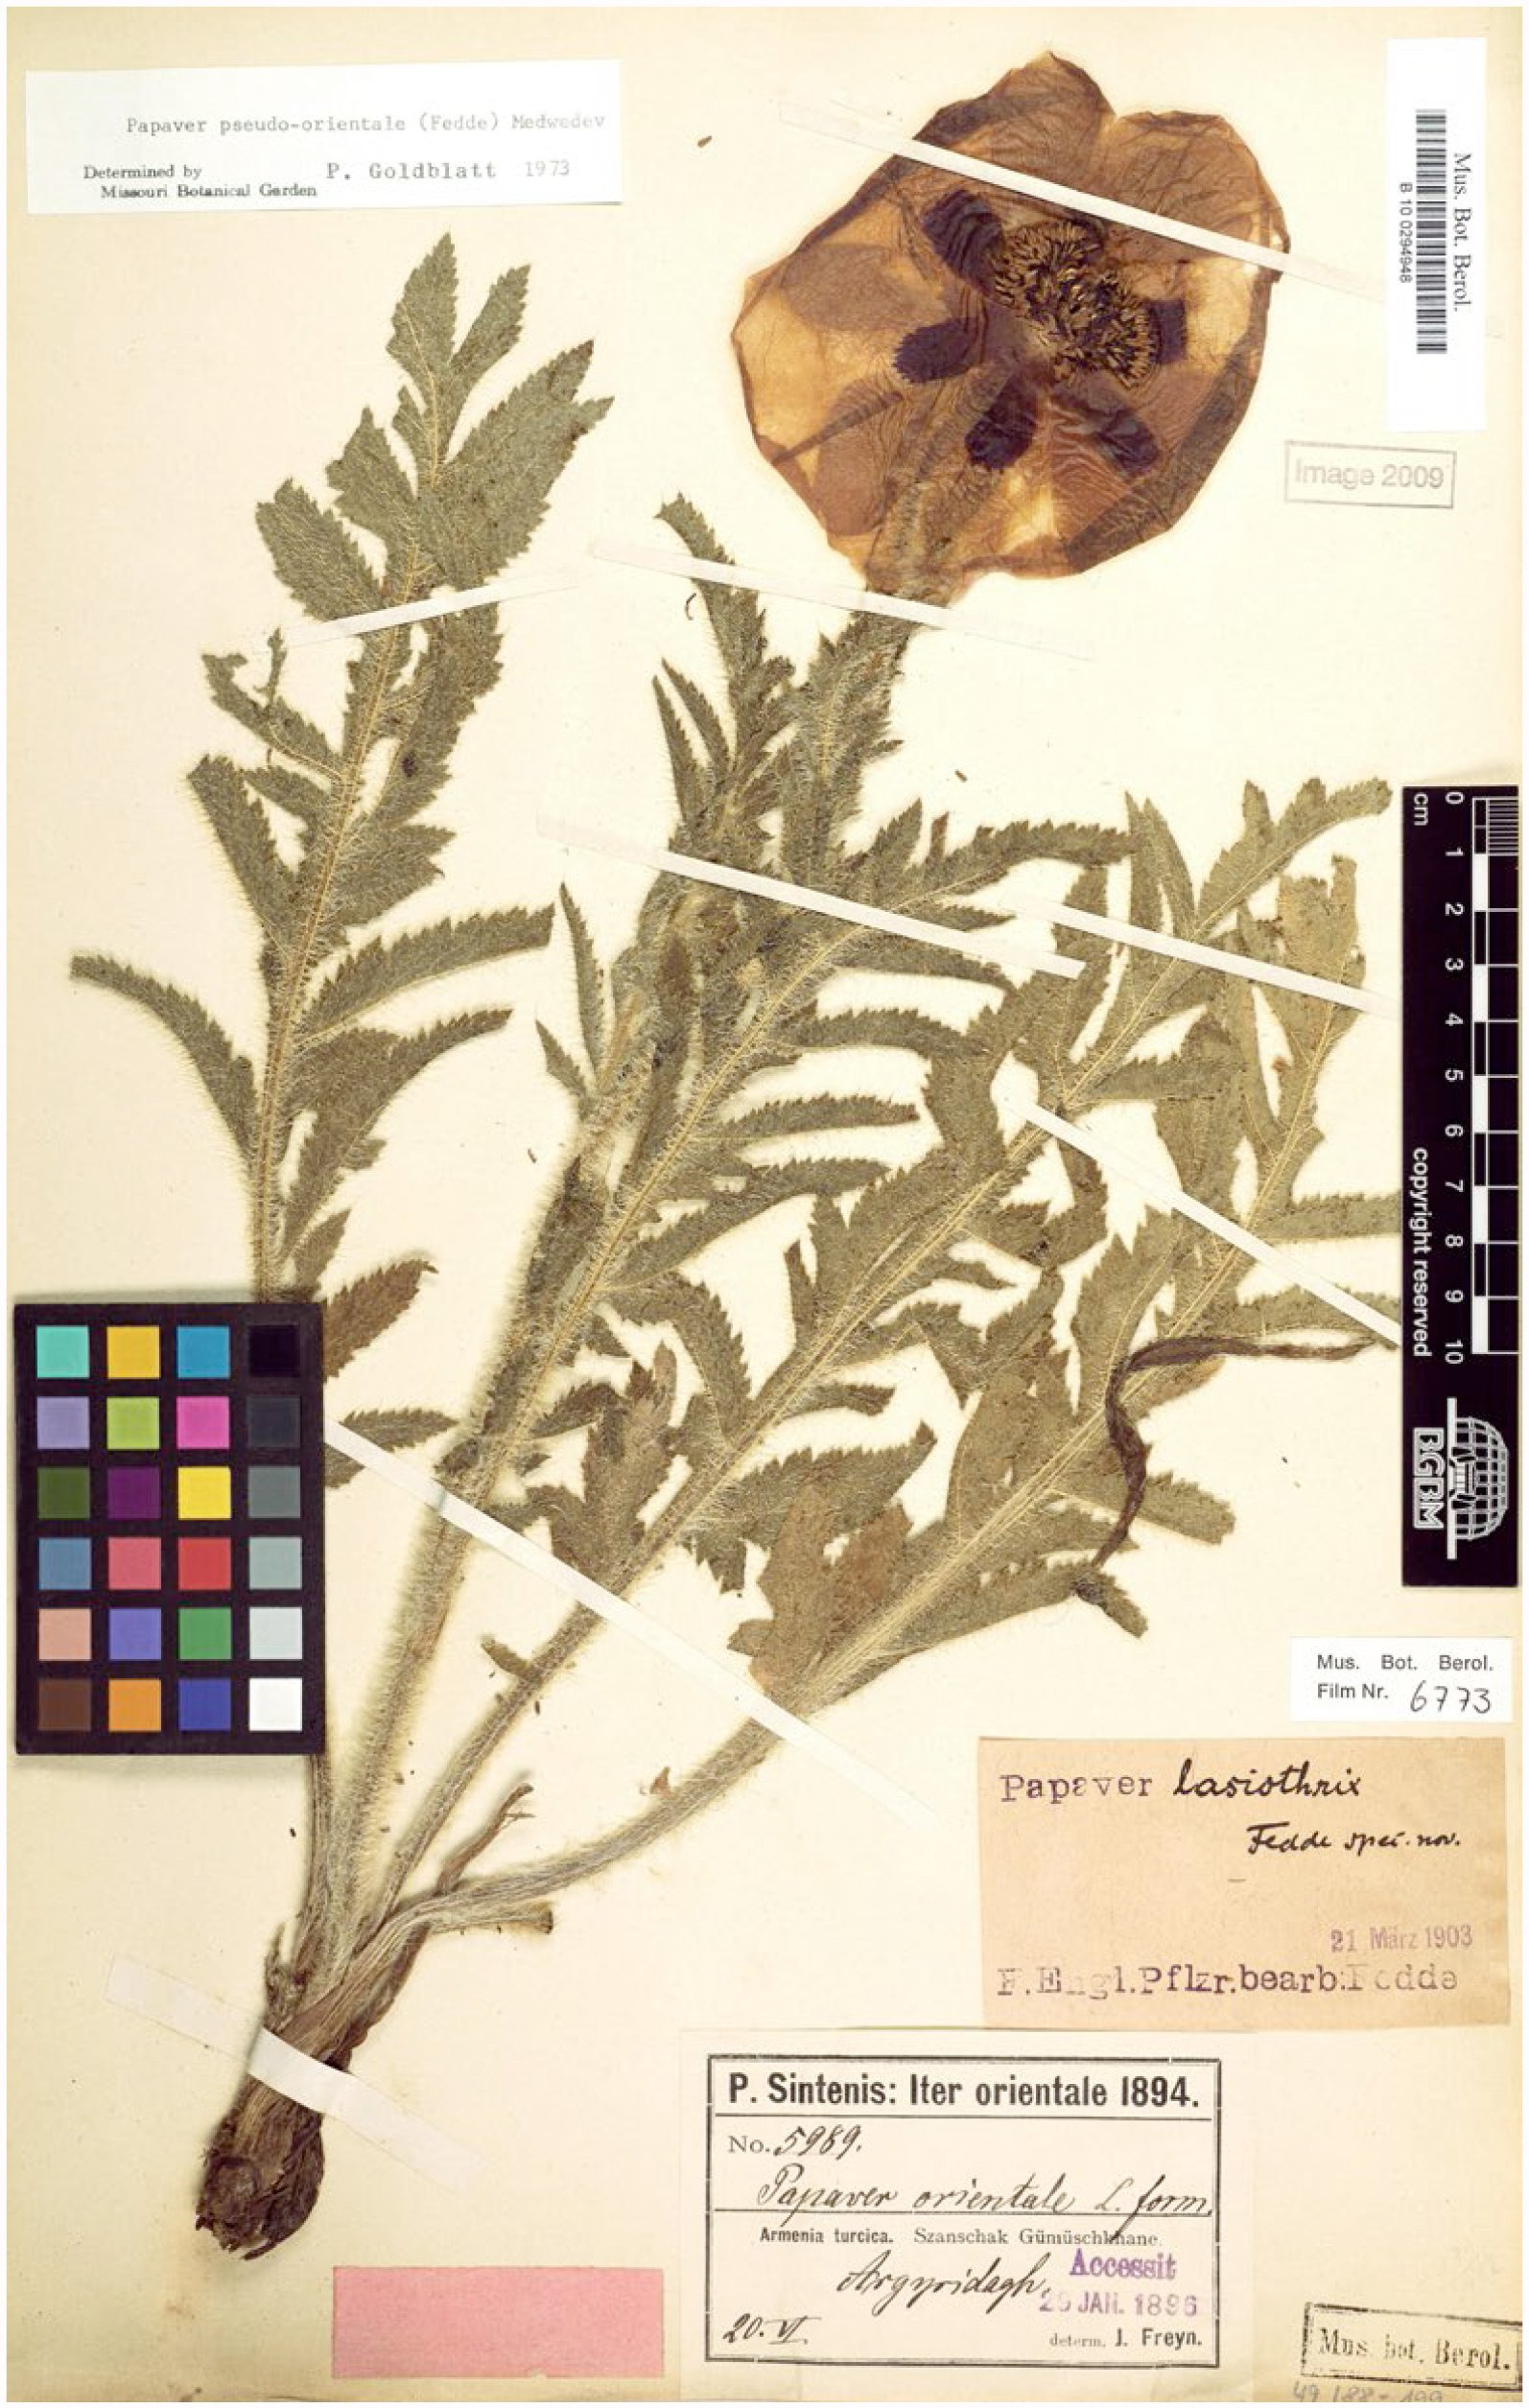 The discovery and naming of Papaver orientale s l